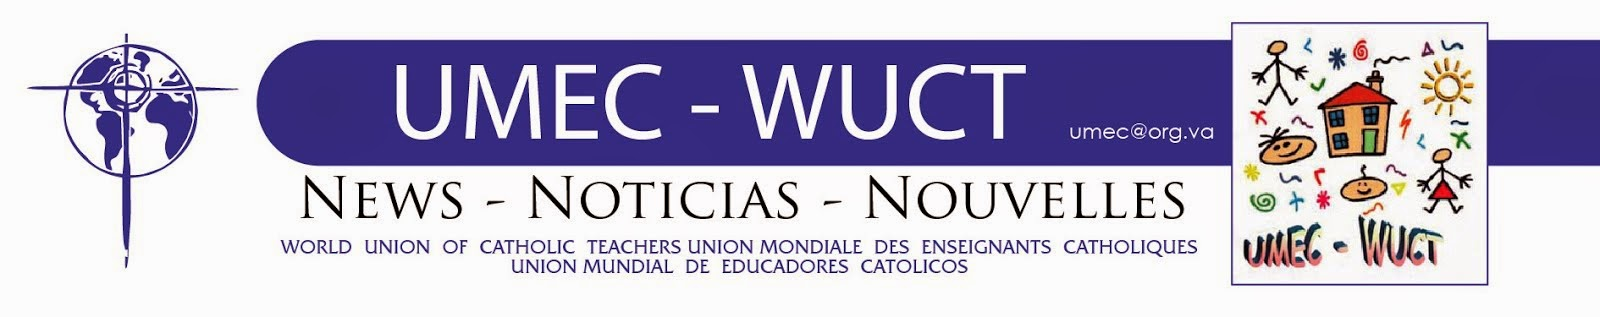 WUCT-UMEC News